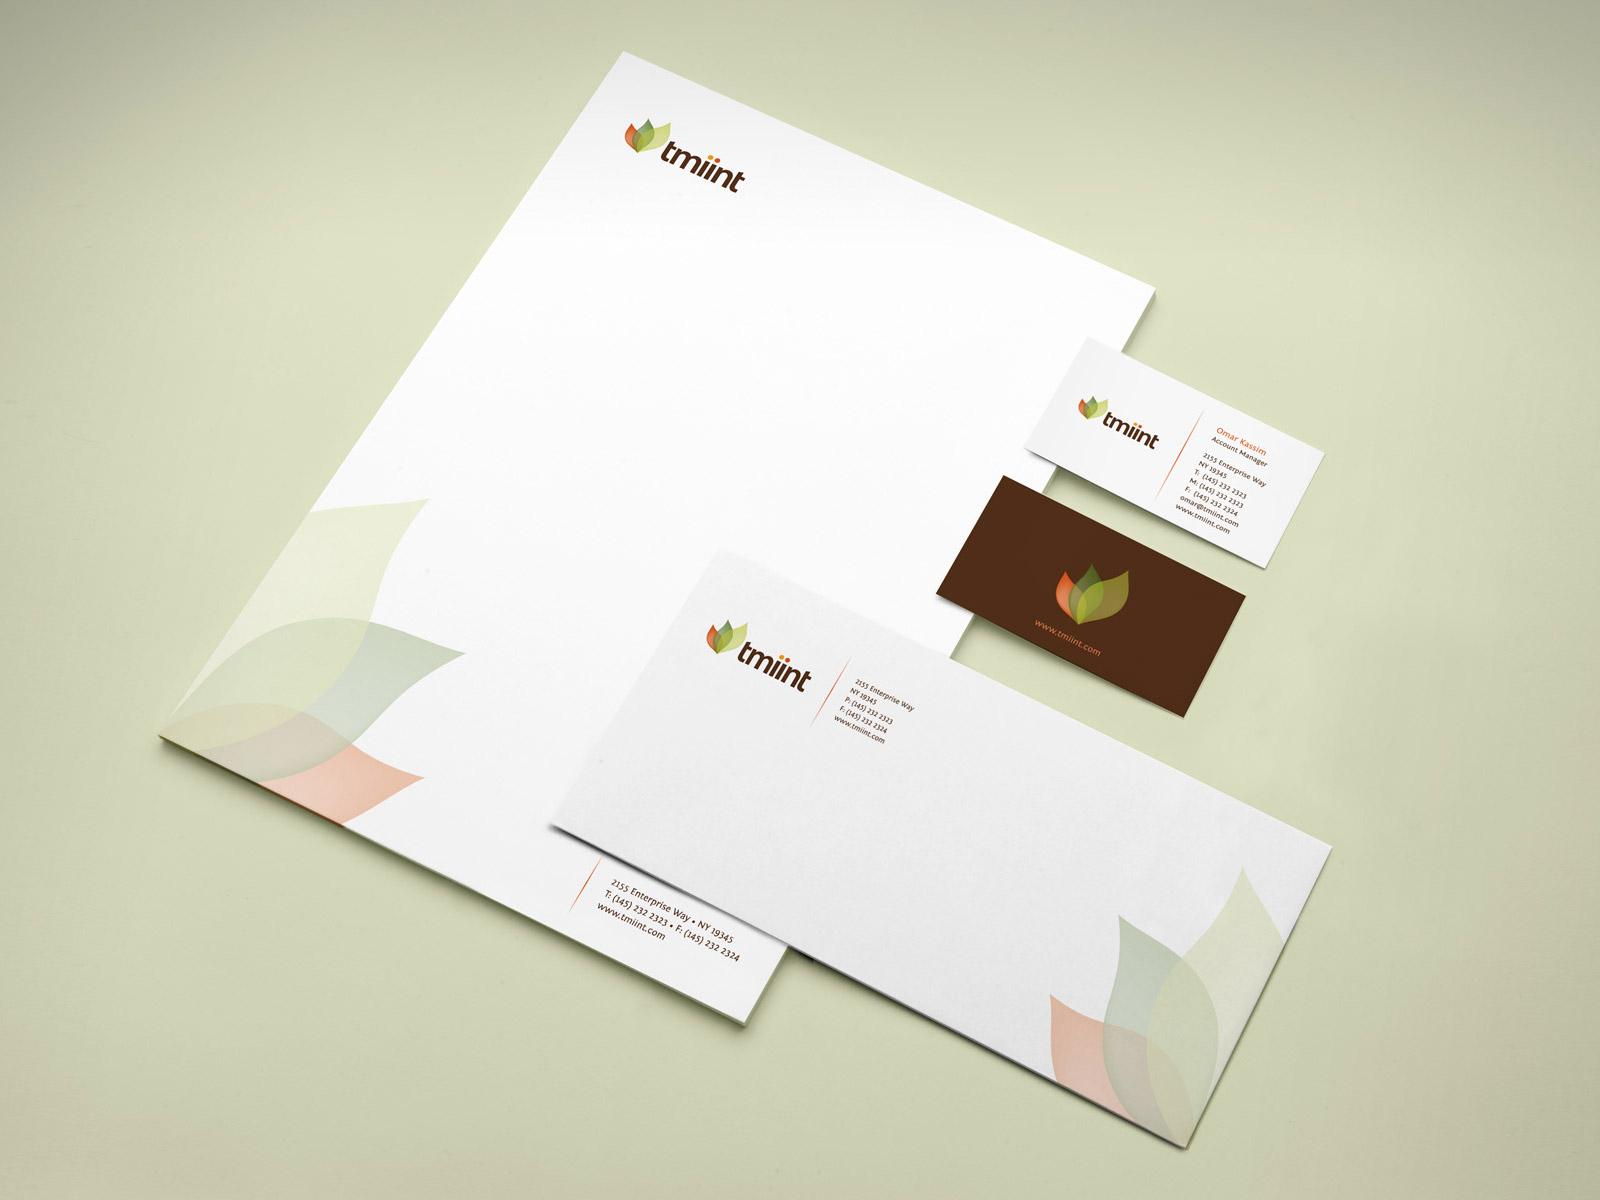 tmiint corporate visual identity